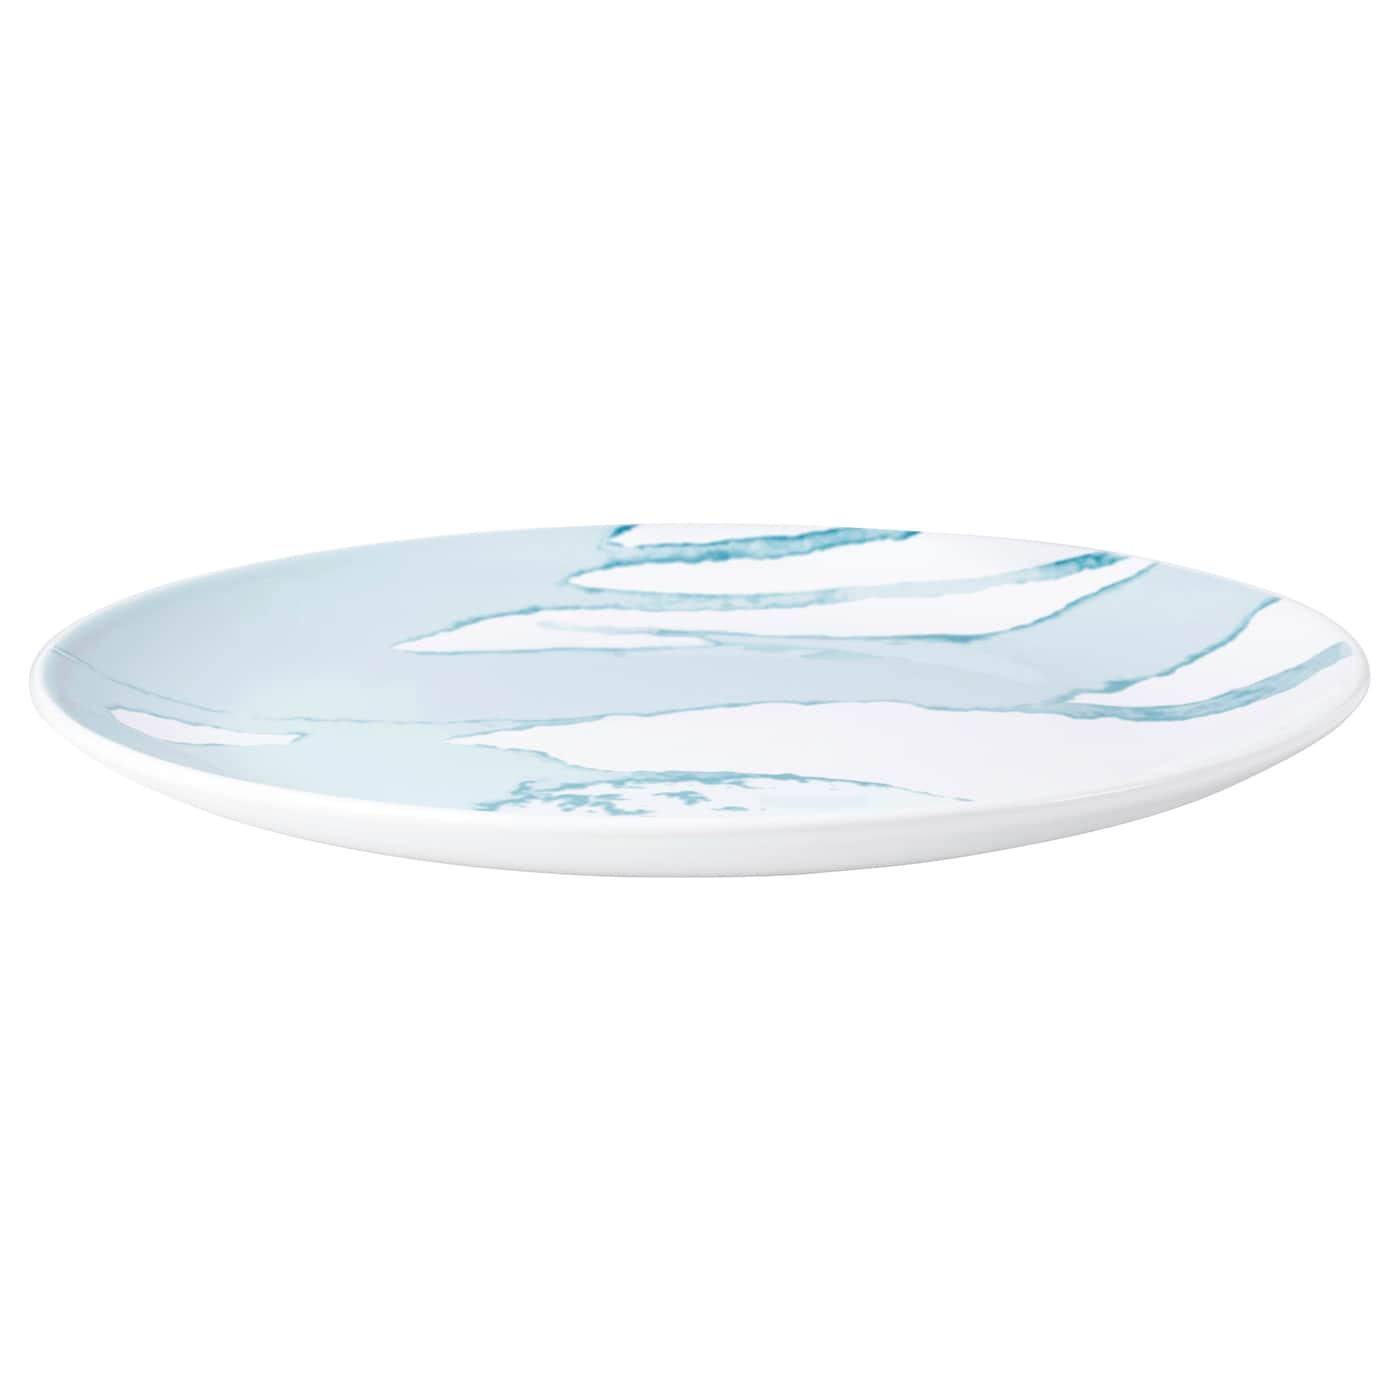 IKEA BEHAGA plate